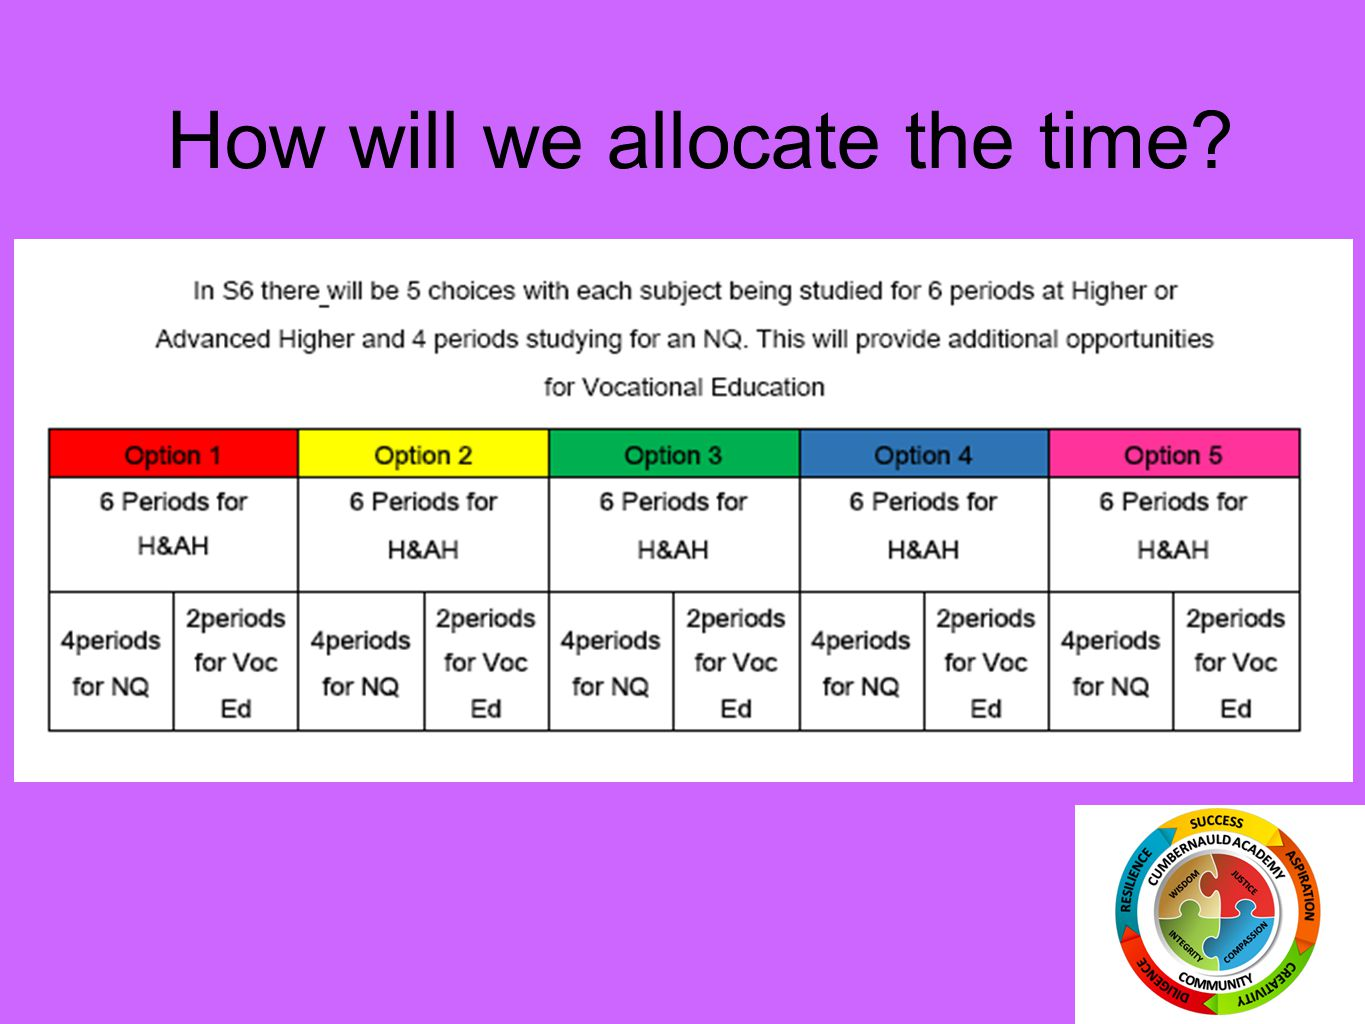 How will we allocate the time?